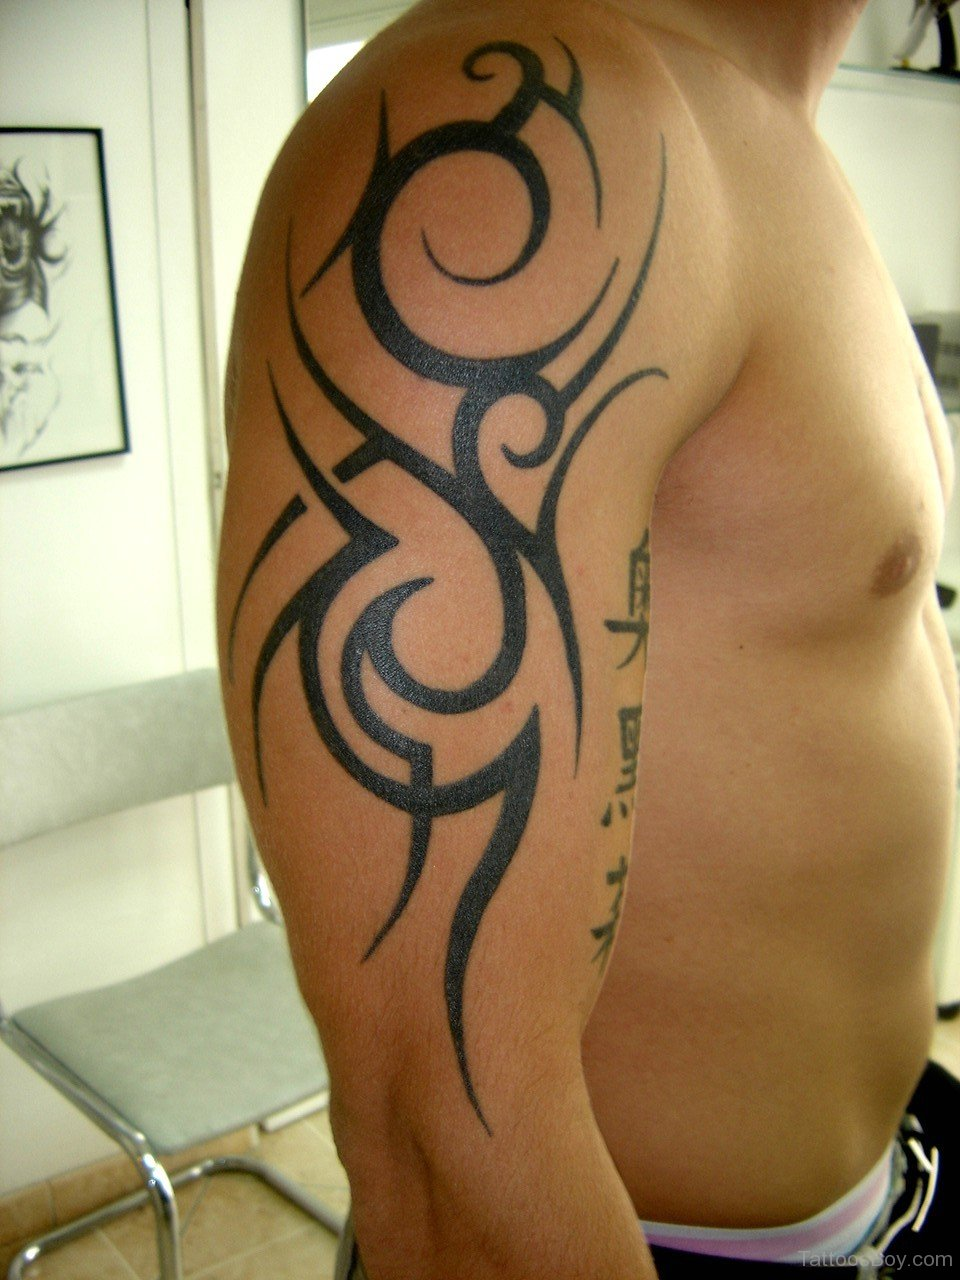 Body Parts Tattoos Tattoo Designs Tattoo Pictures Ideas And Designs